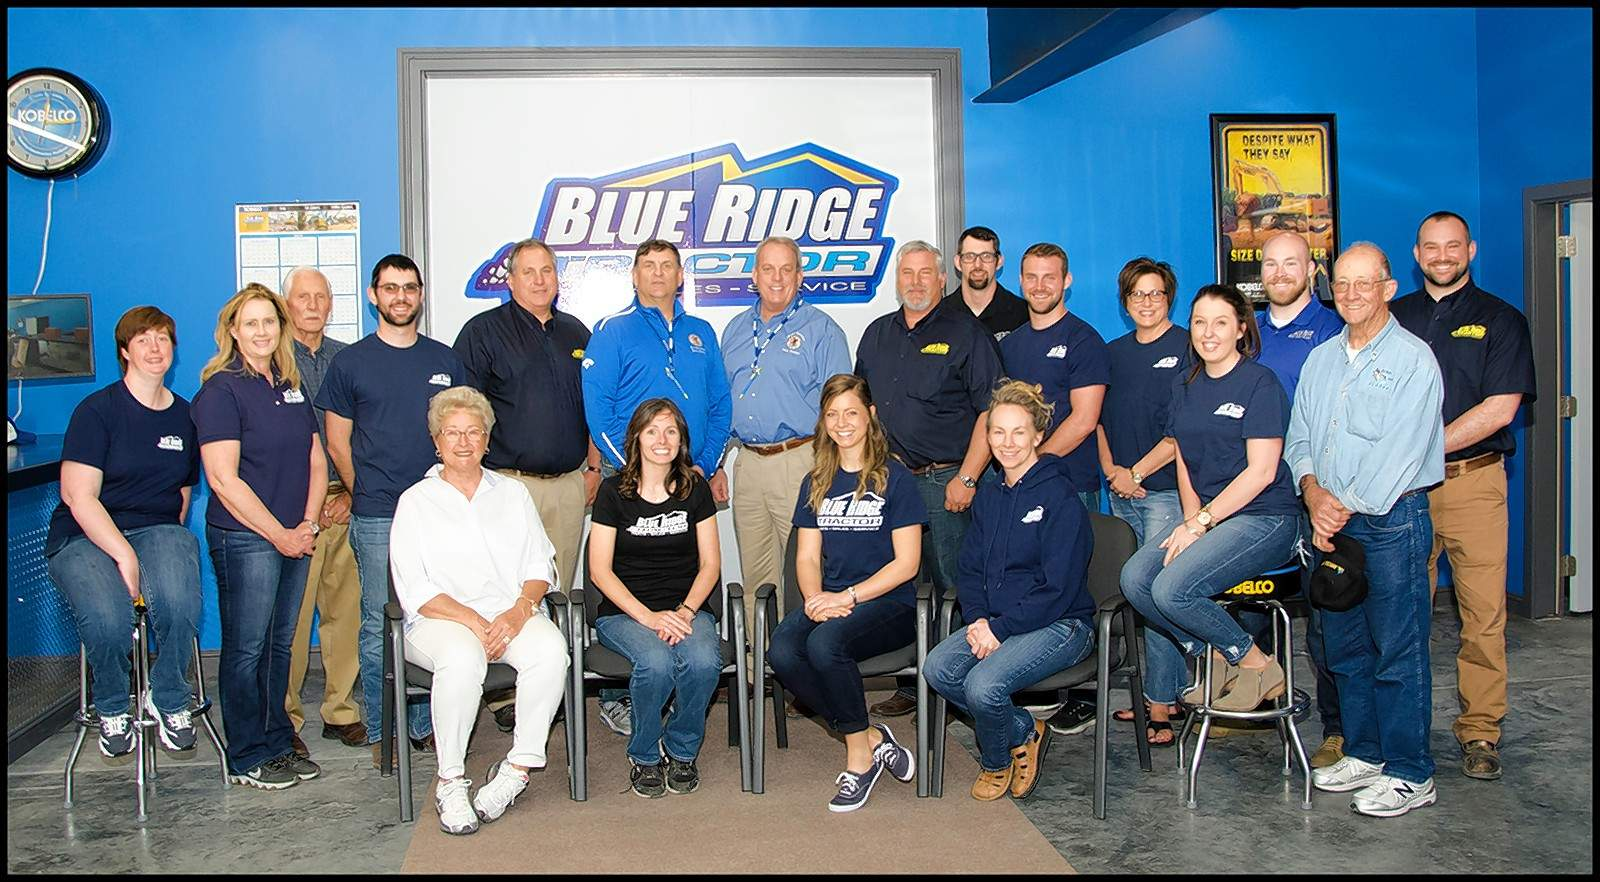 Rep. Dave Severin (R-Benton) and Sen. Dale Fowler (R-Harrisburg) joined the Gibbs family, owners of Blue Ridge Tractor, at last weekend's open house celebrating the business' new location at Benton's I-57 Airport Business Park.